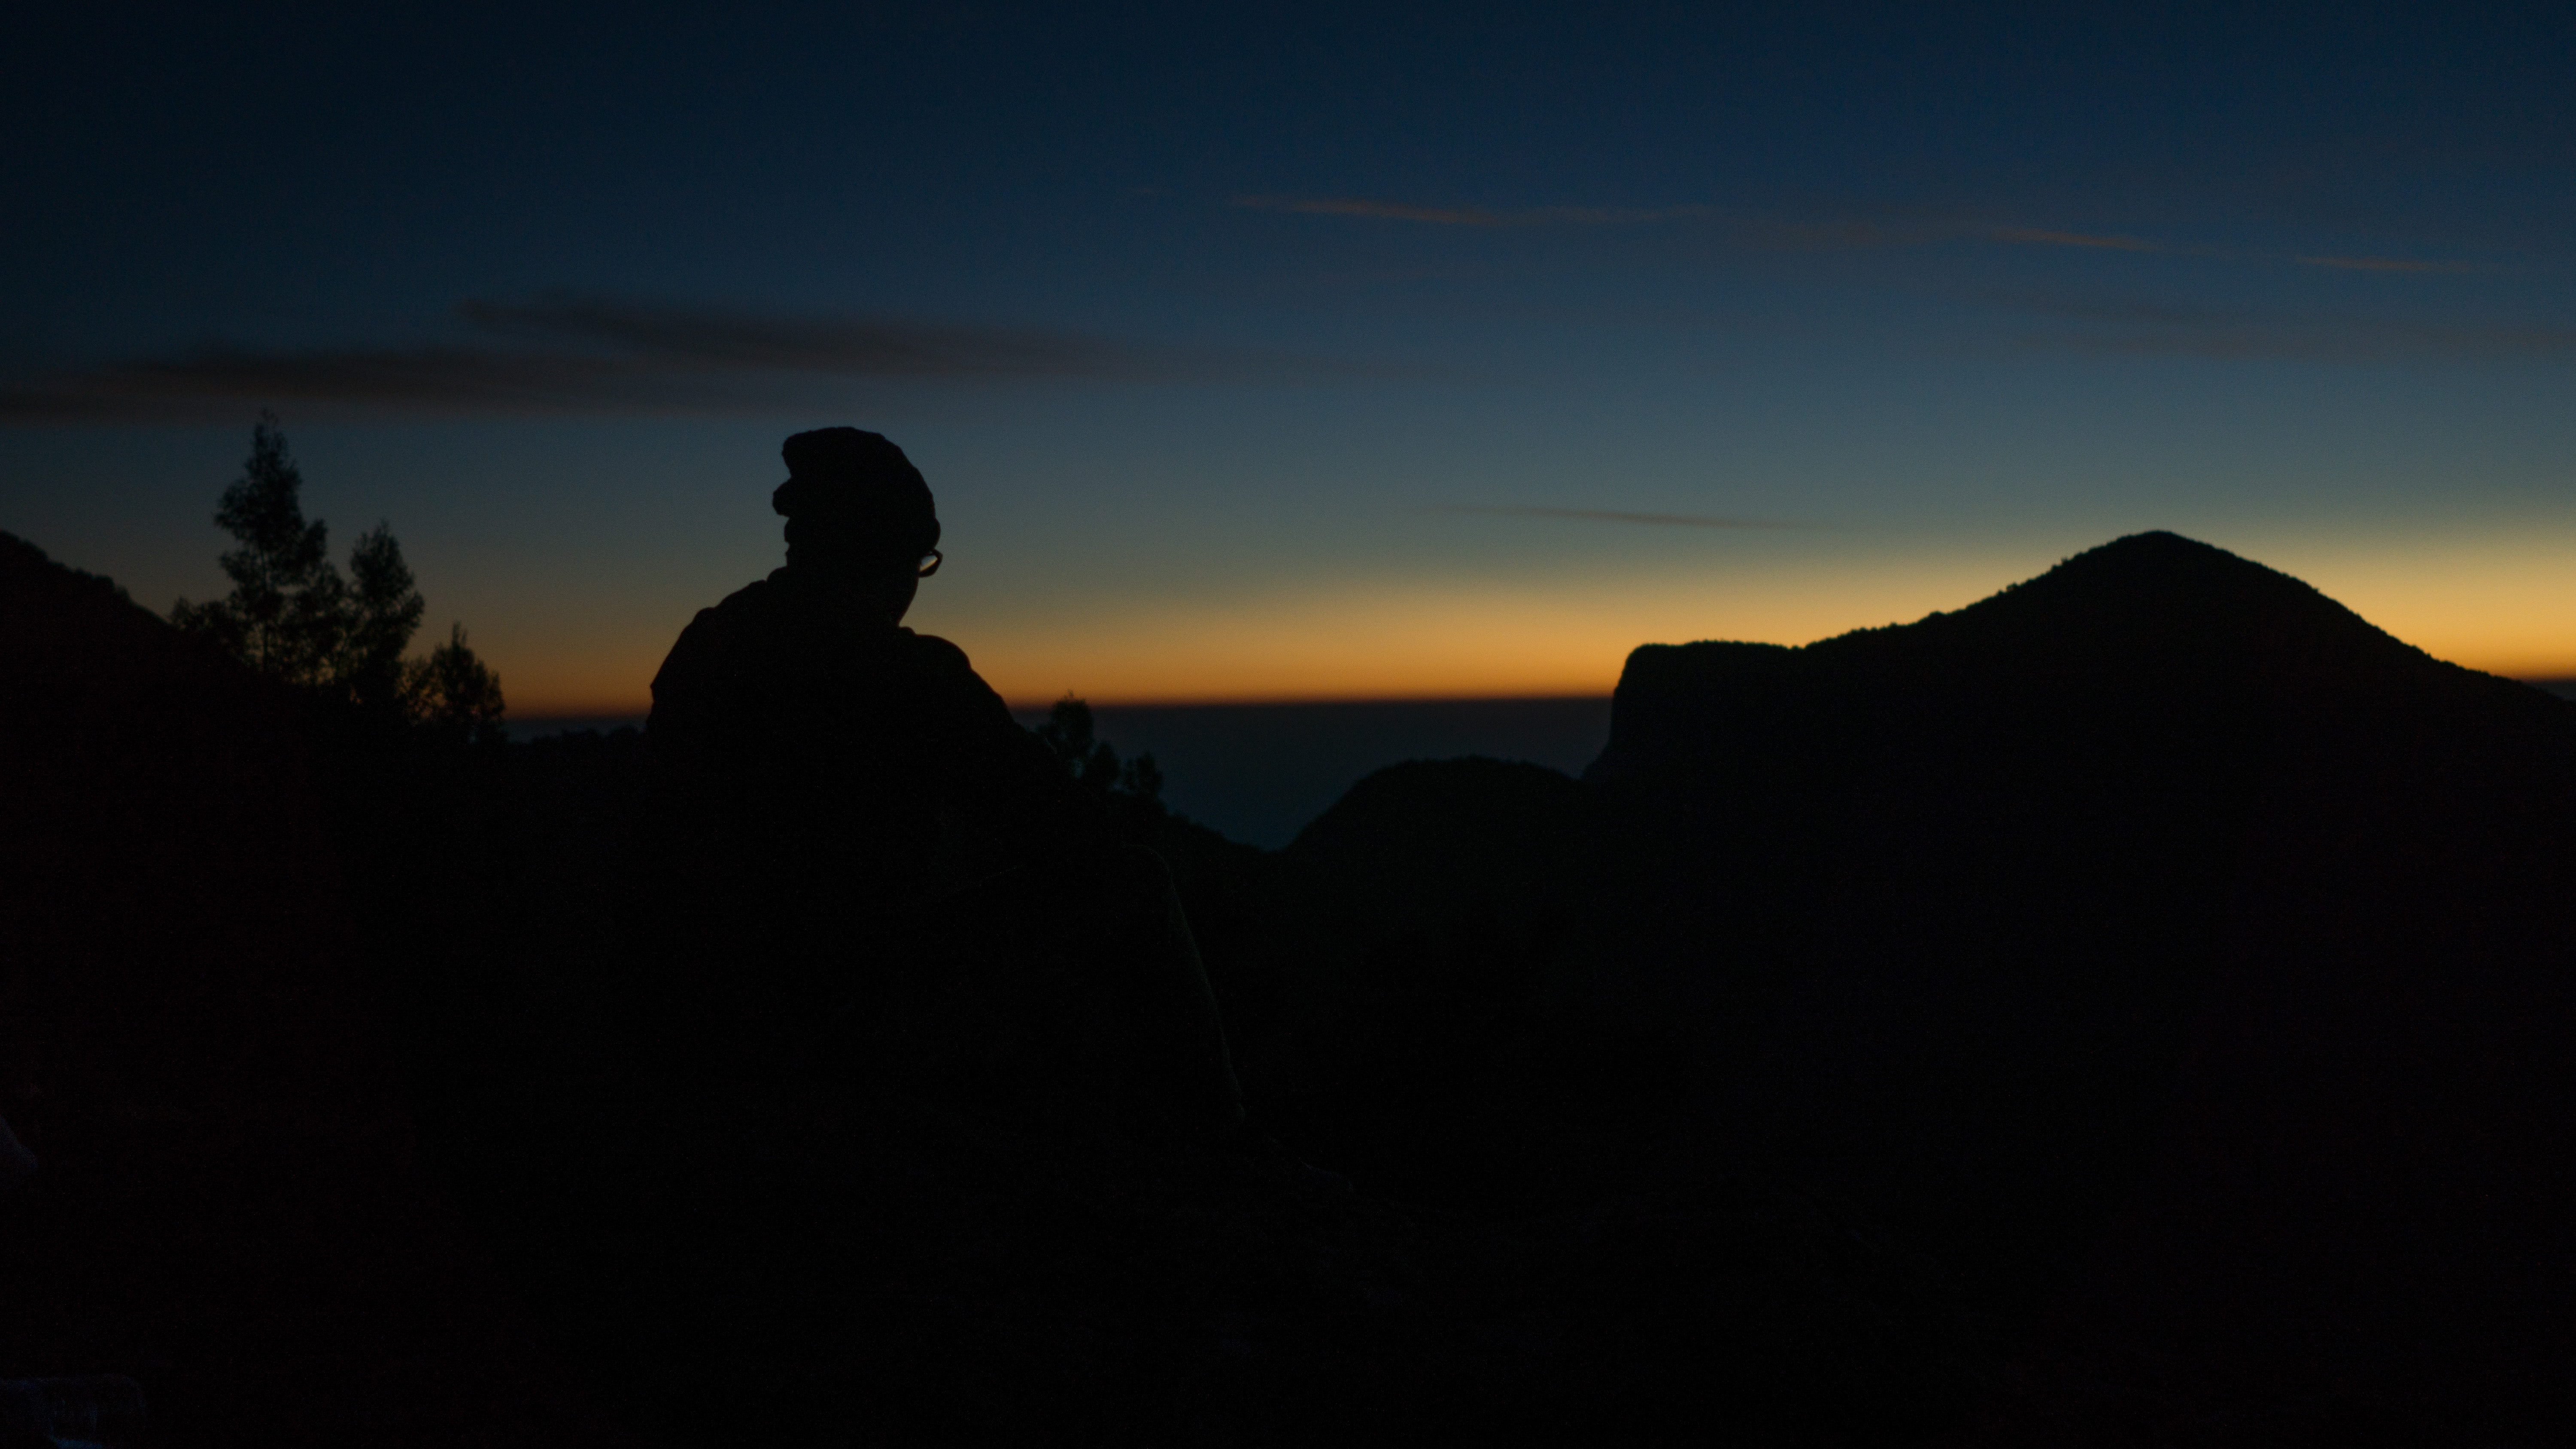 silhouette of person sitting during nighttime